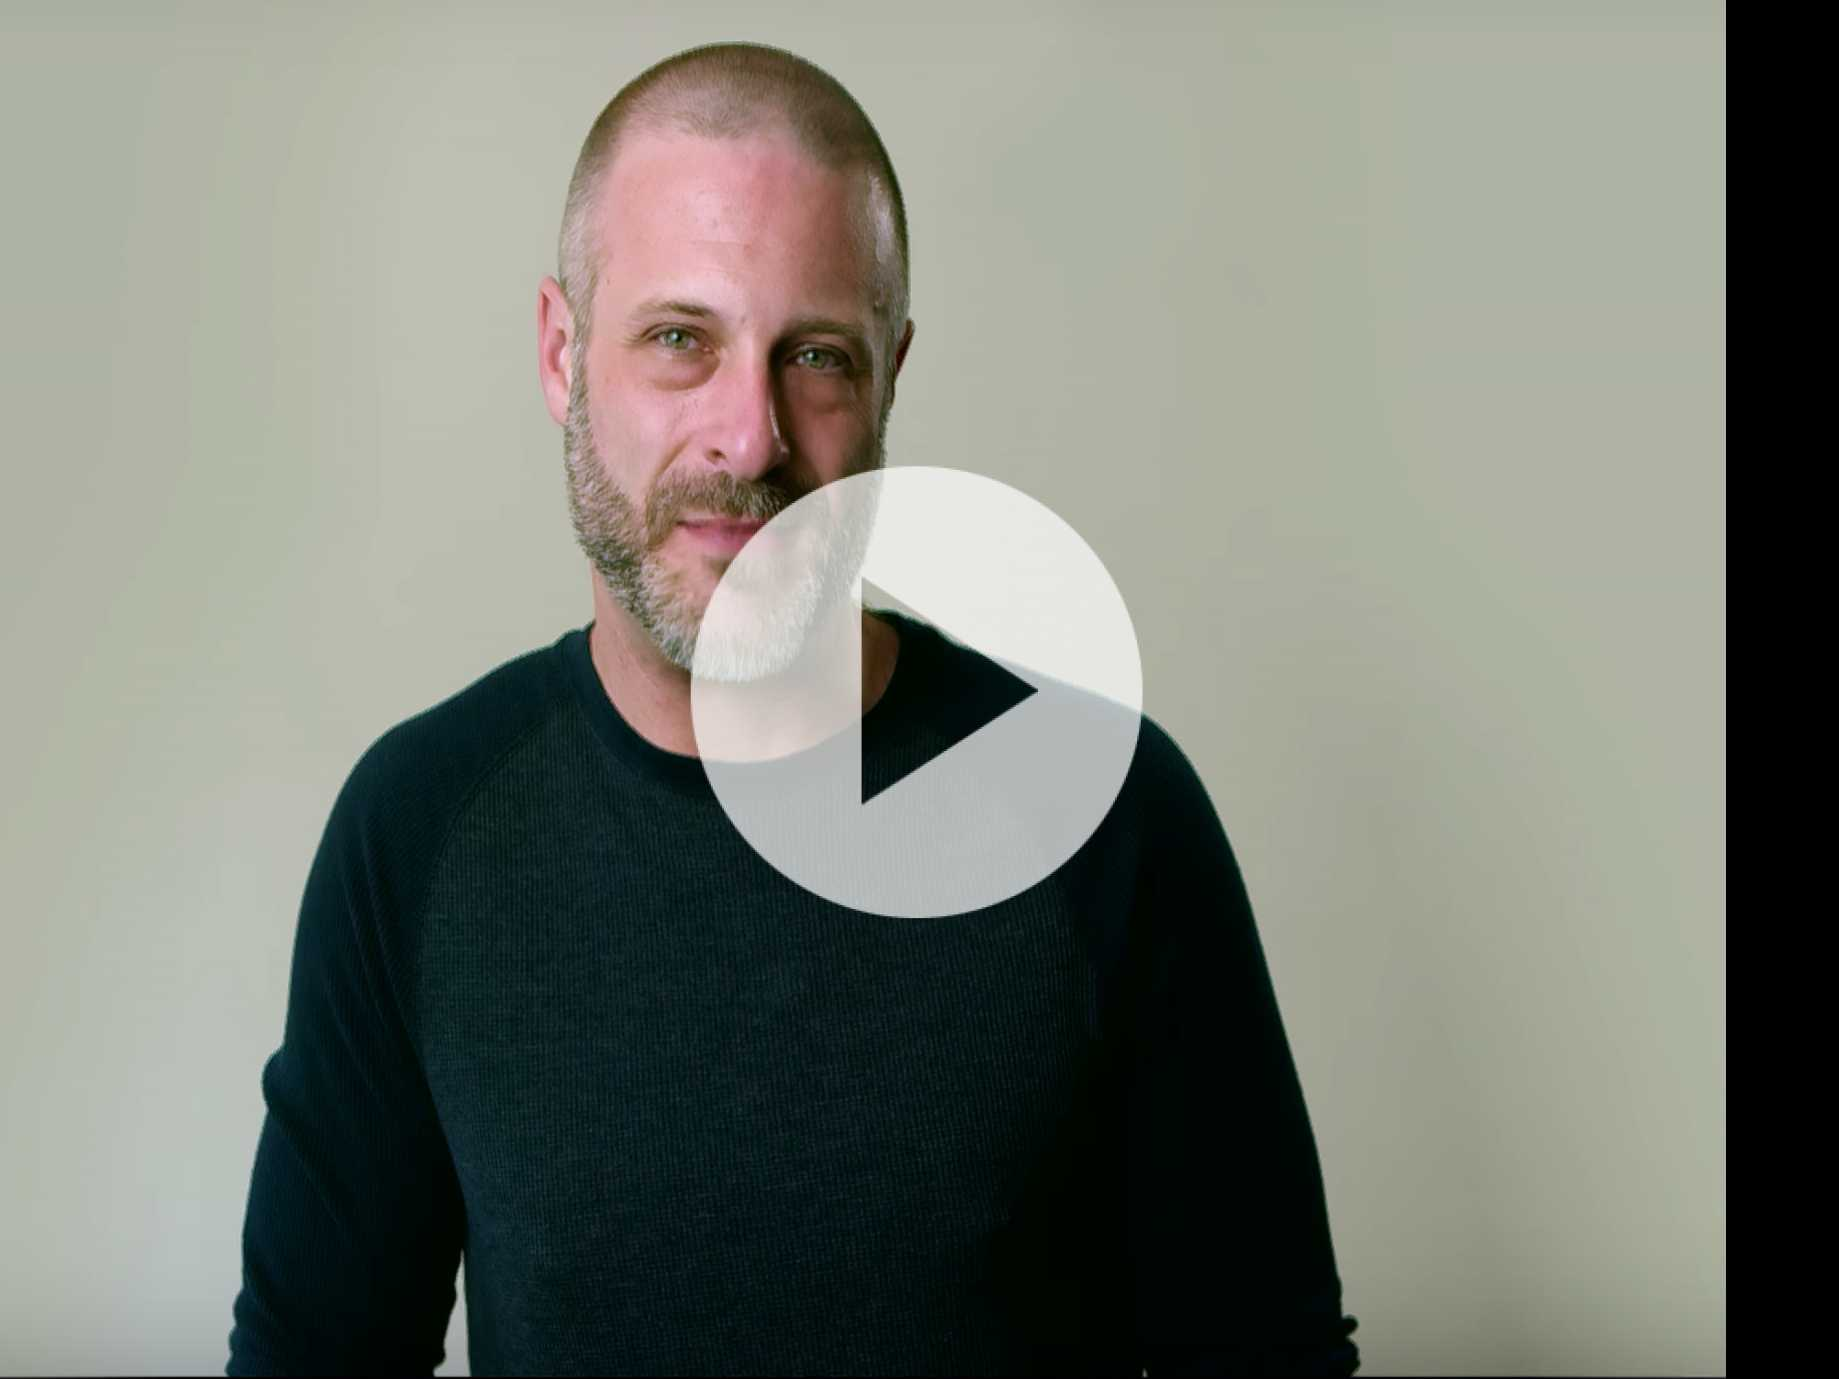 Watch: Daddyhunt Gets Real About STD Testing